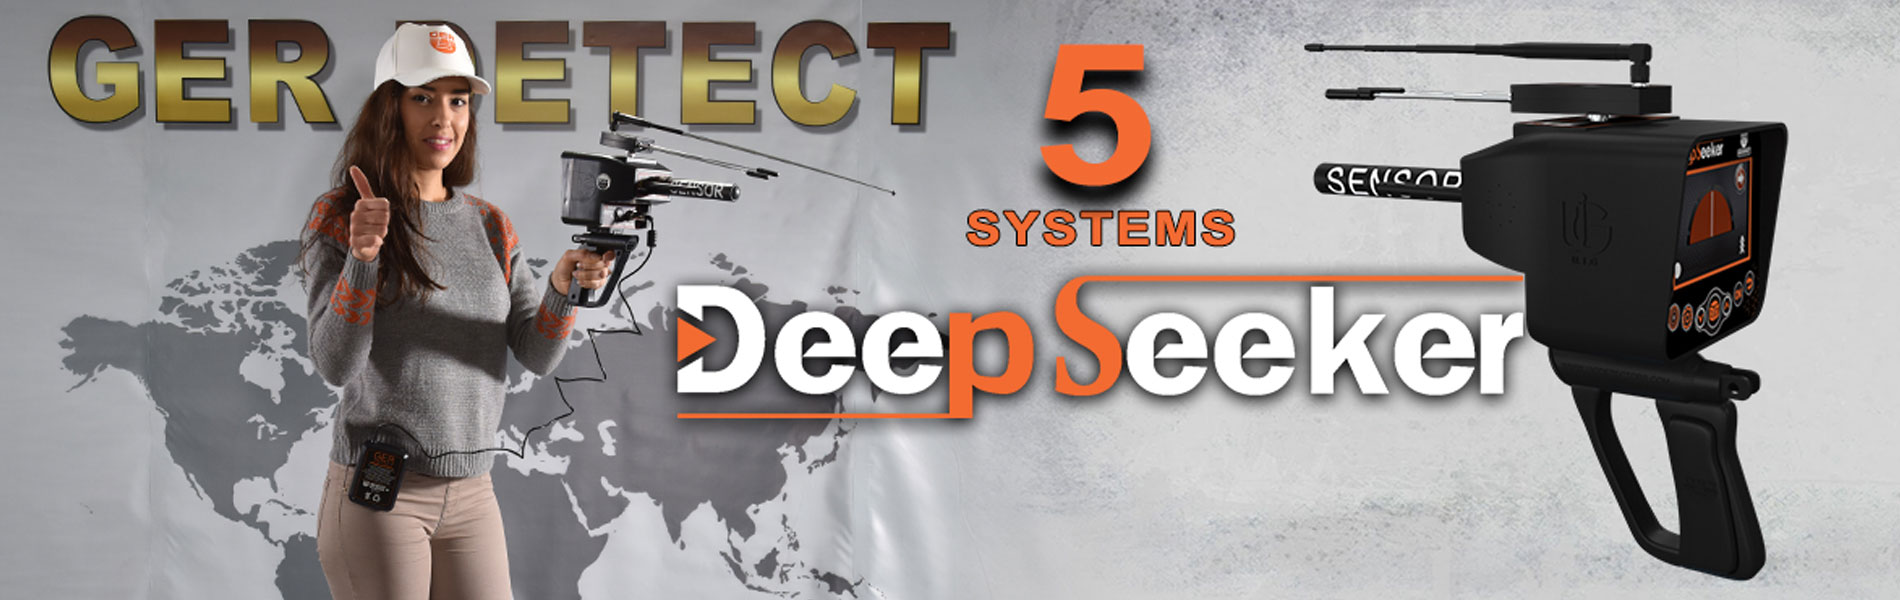 ground-treasure-detector-deep-seeker-device-5-systems